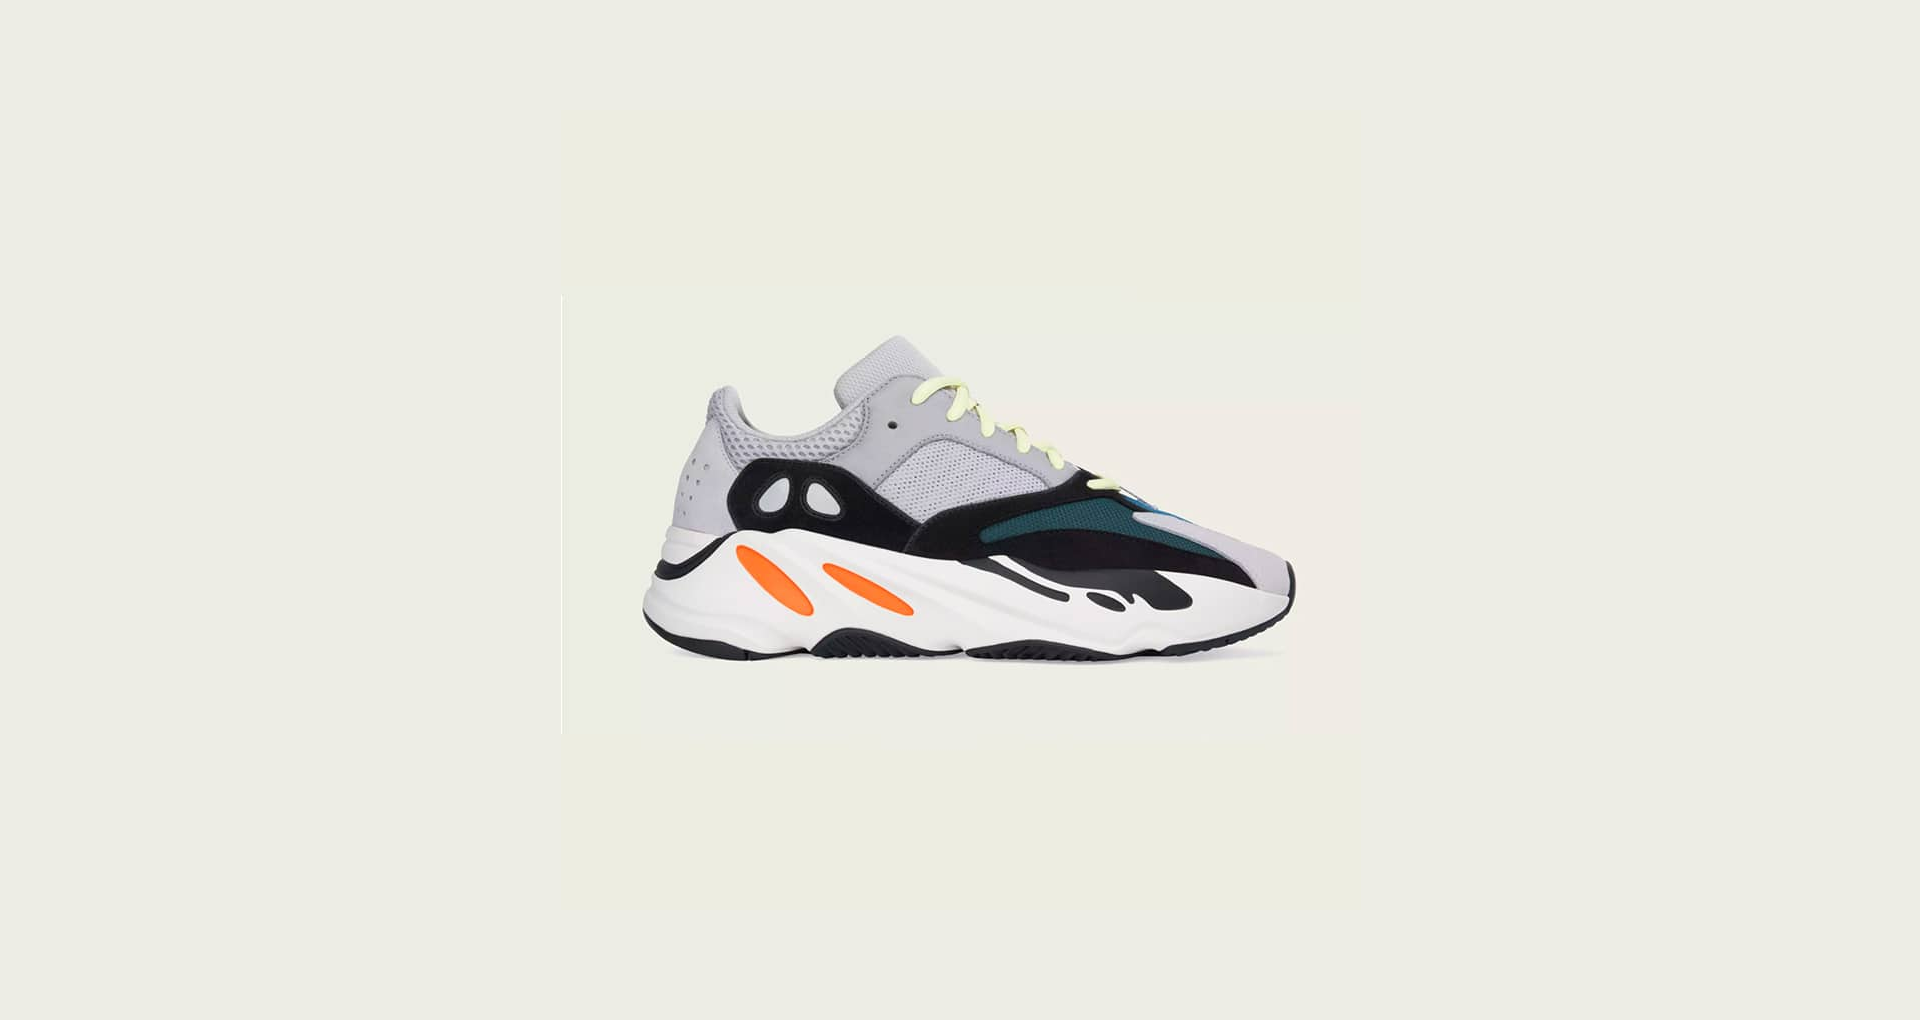 B75571 adidas YEEZY Boost 700 Wave Runner 5